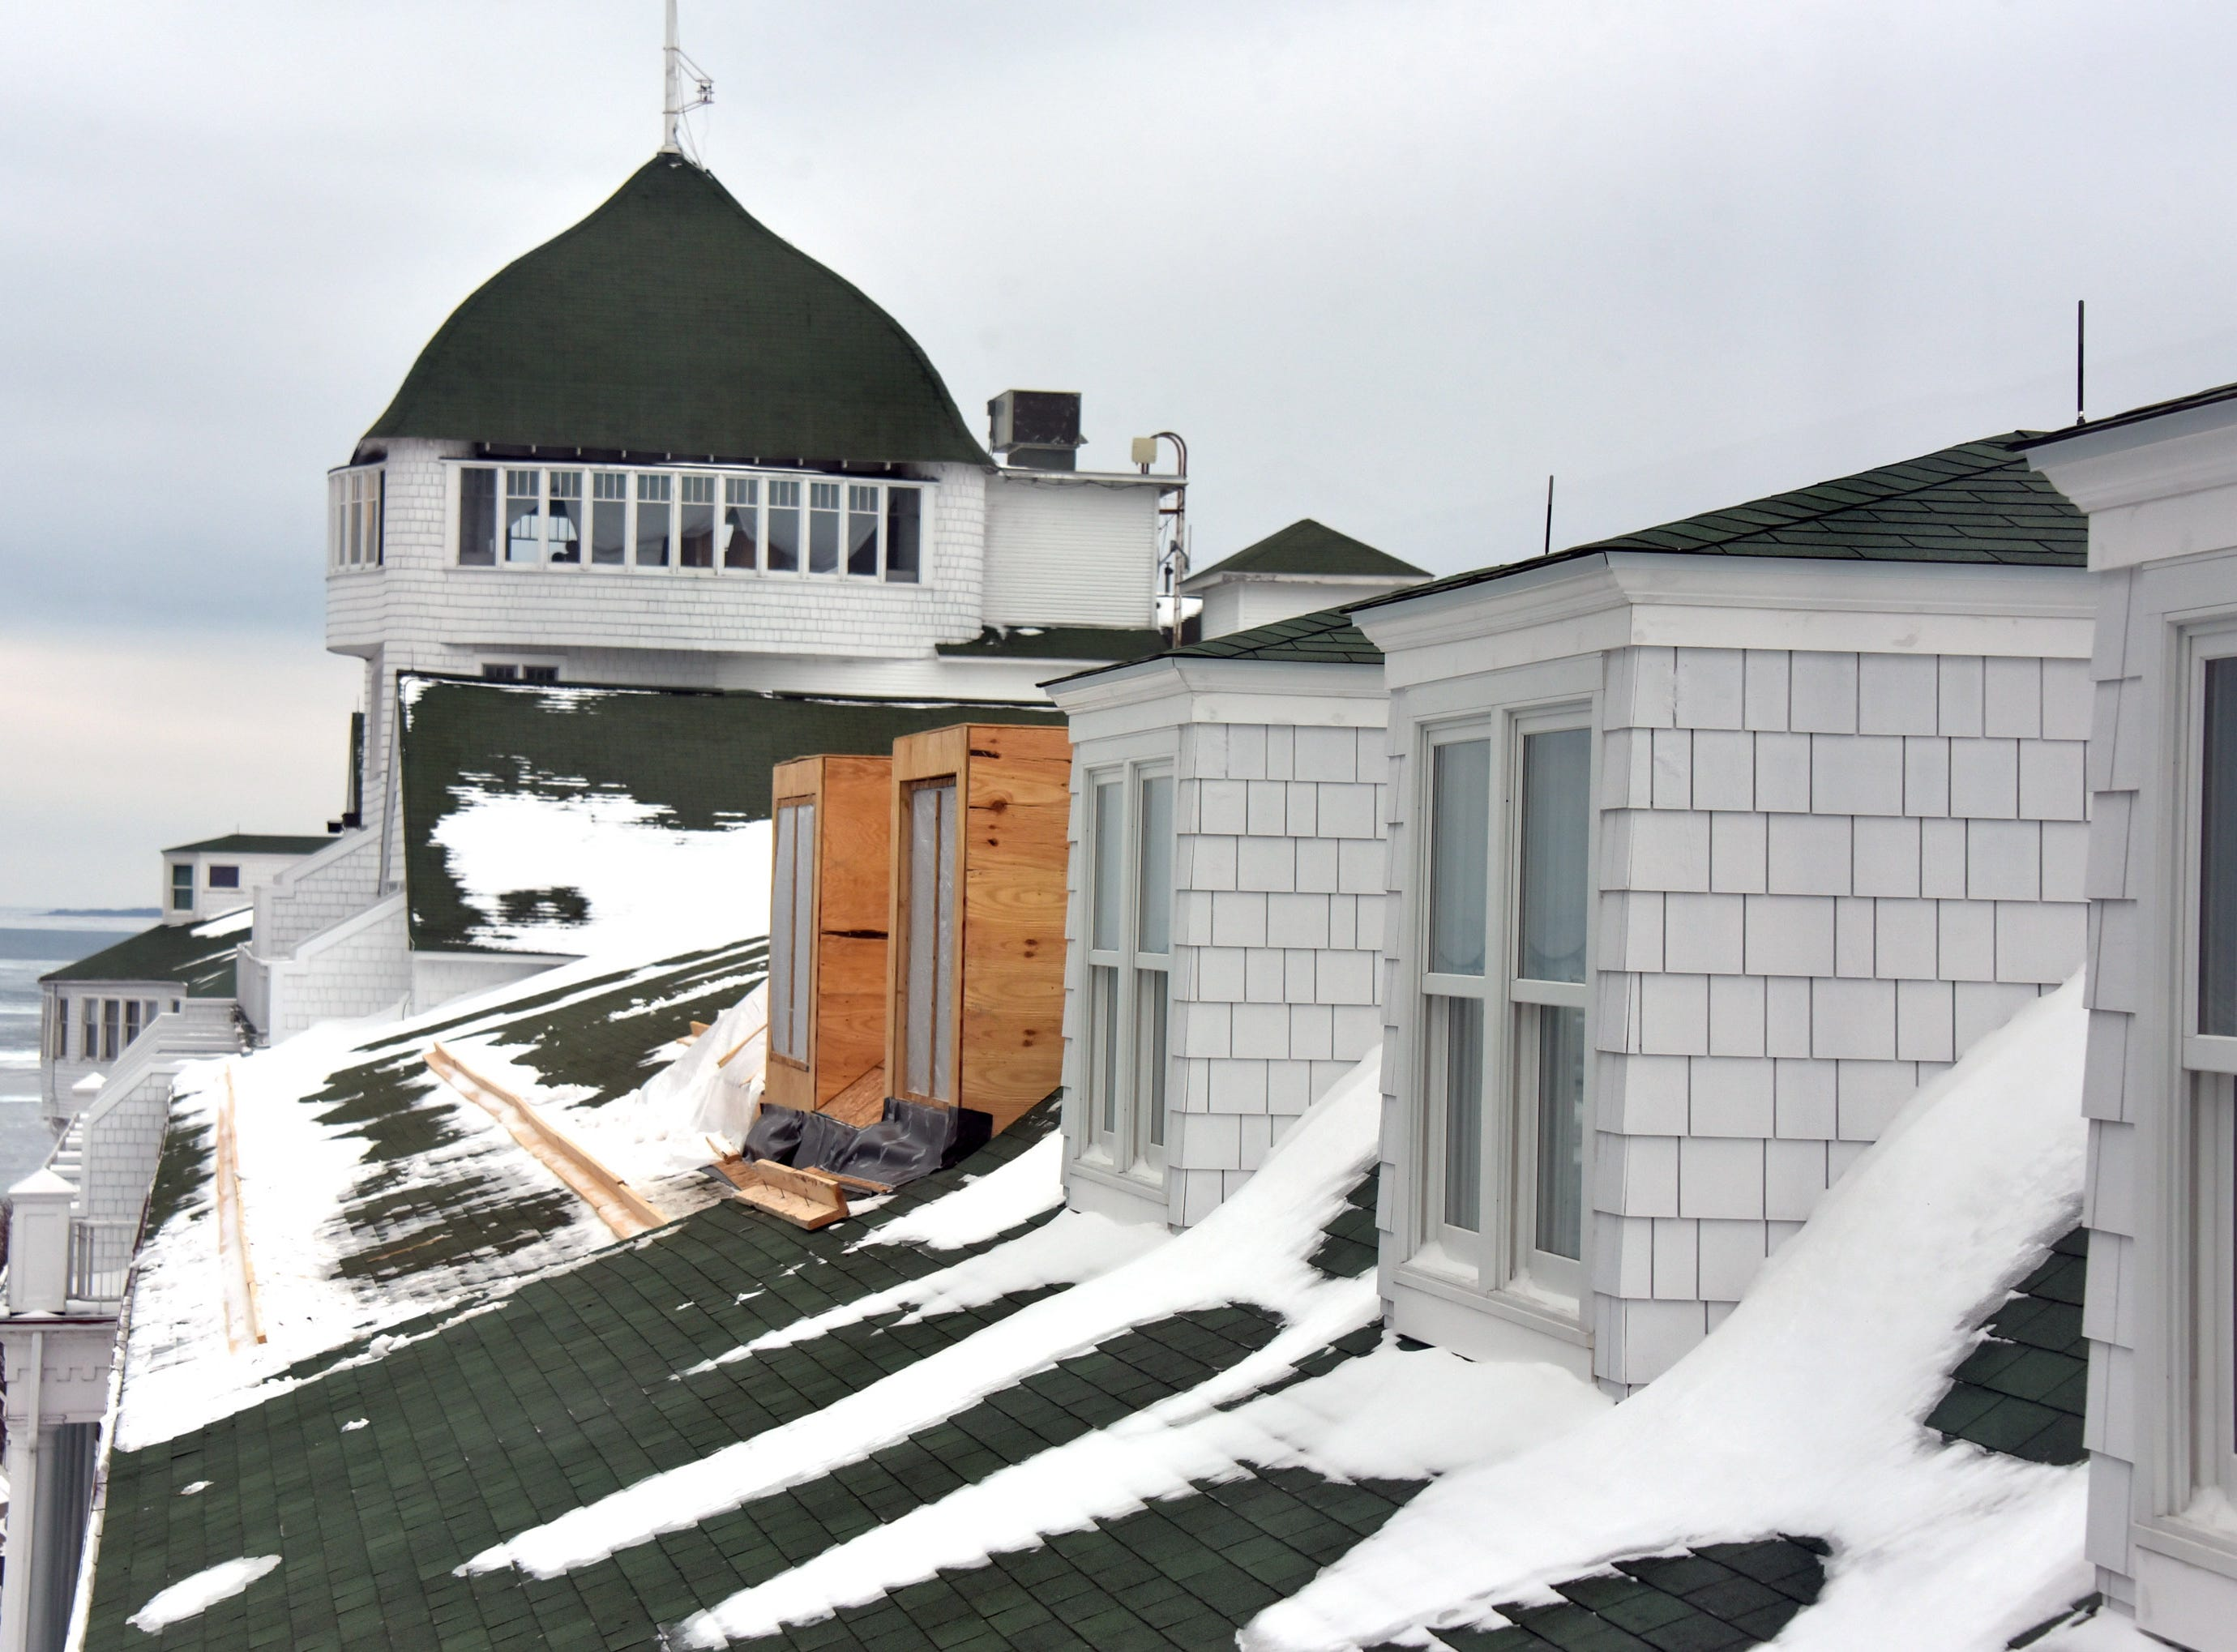 New dormers are appearing on the fourth floor roof at Mackinac Island's iconic Grand Hotel.